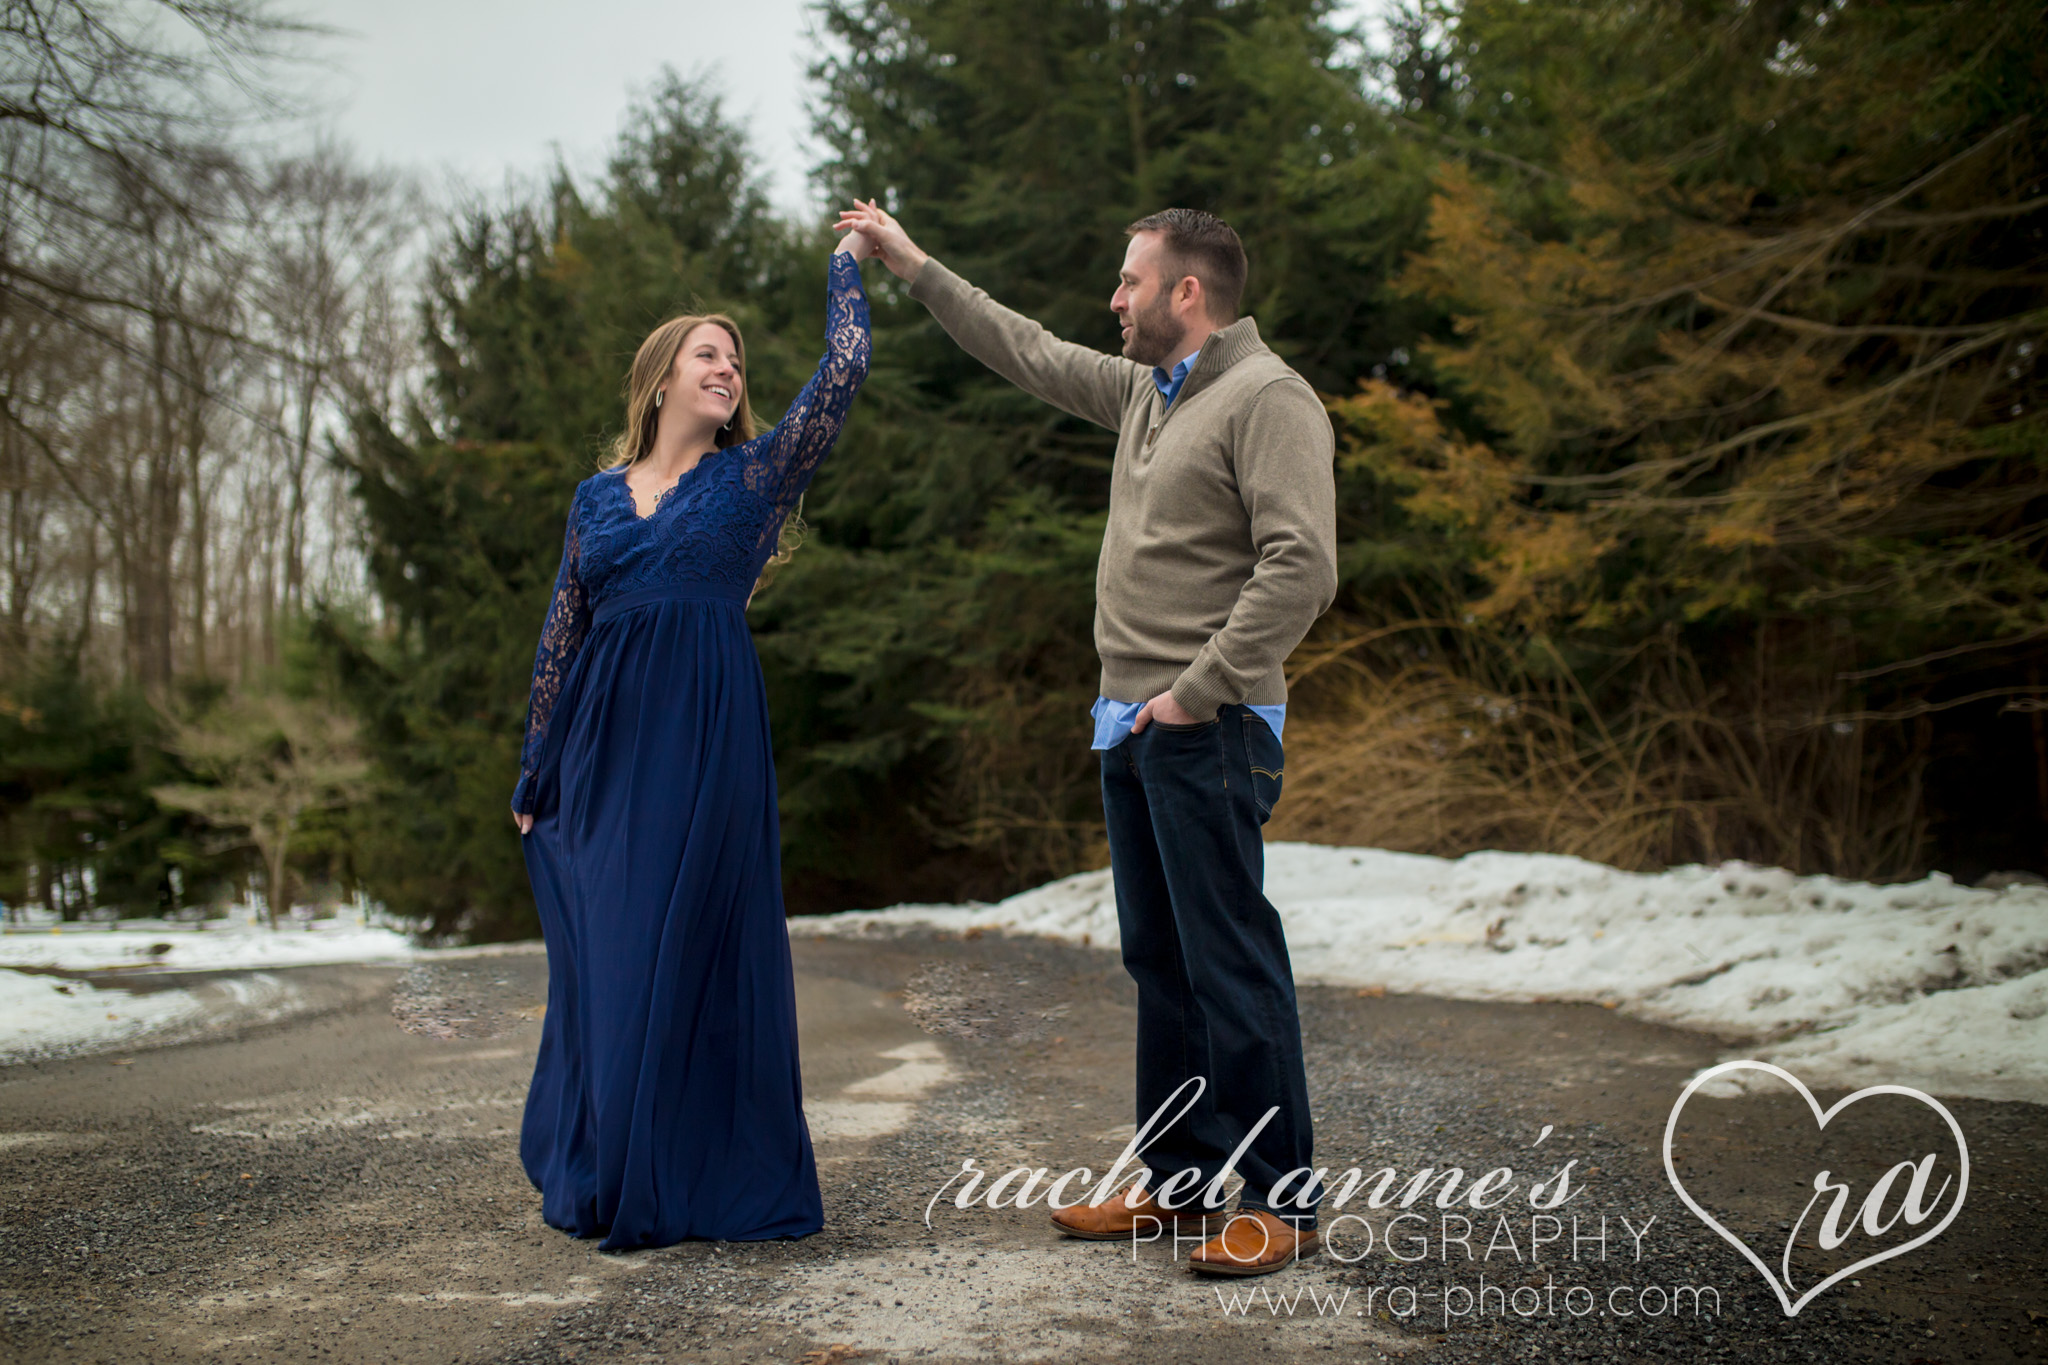 057-JKM-DUBOIS-PA-ENGAGEMENT-PHOTOGRAPHY.jpg